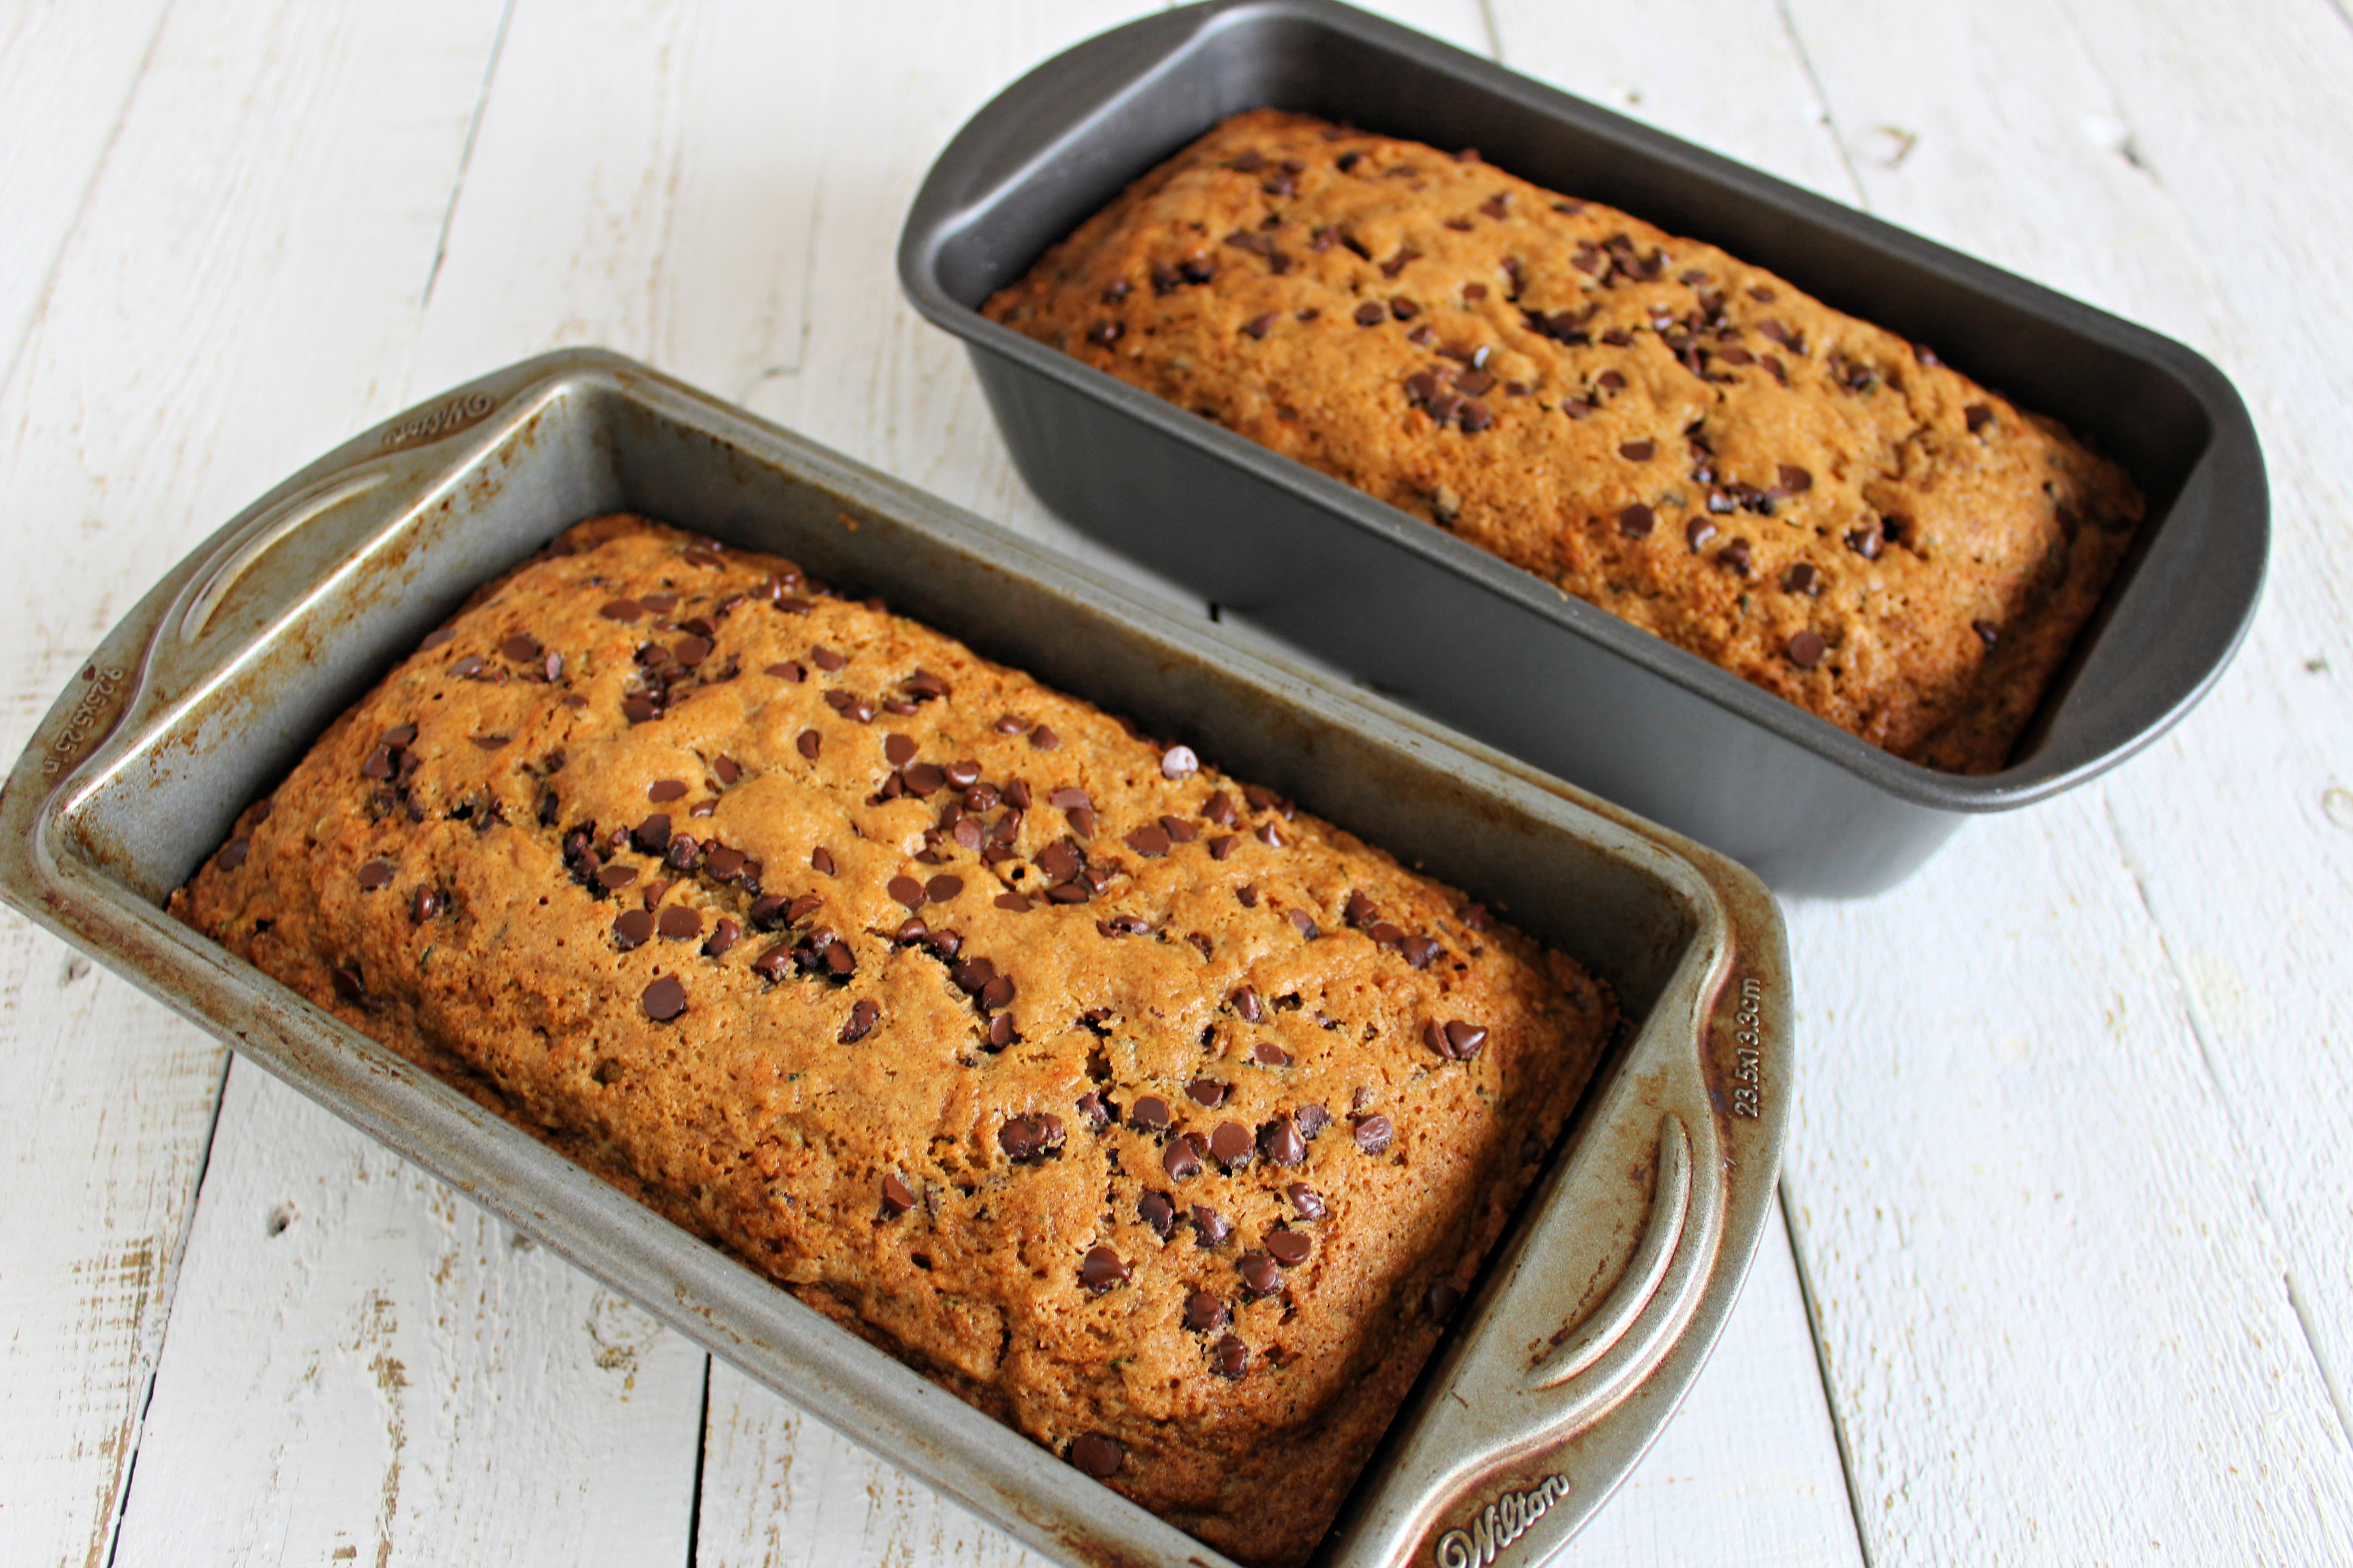 Got zucchinis? This super moist & ridiculously easy zucchini bread recipe whips up fast and makes enough to share! It also freezes beautifully!